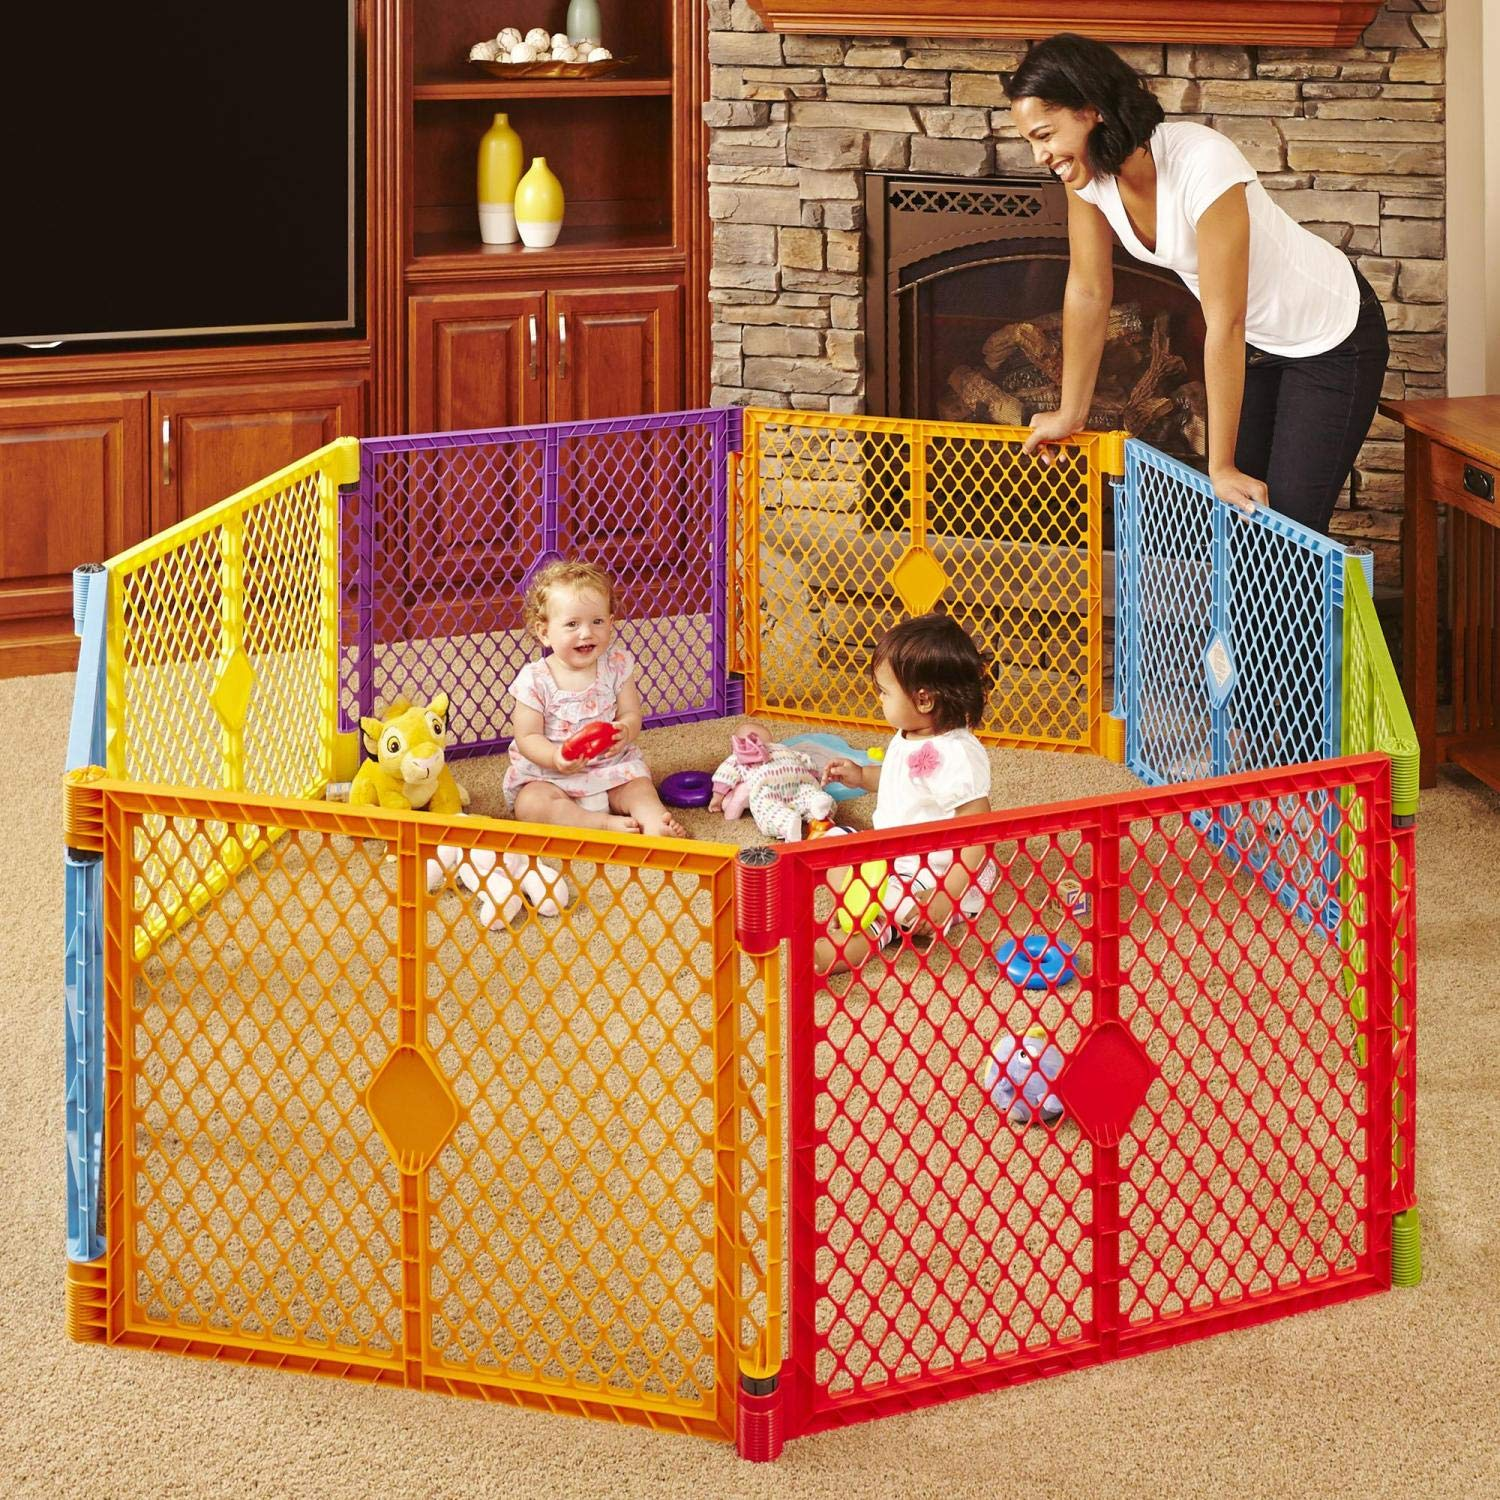 North States Superyard Colorplay 8-Panel Play Yard: Safe Play Area Anywhere - Folds with Carrying Strap for Easy Travel. Freestanding. 34.4 sq. ft. Enclosure (26'' Tall, Multicolor)